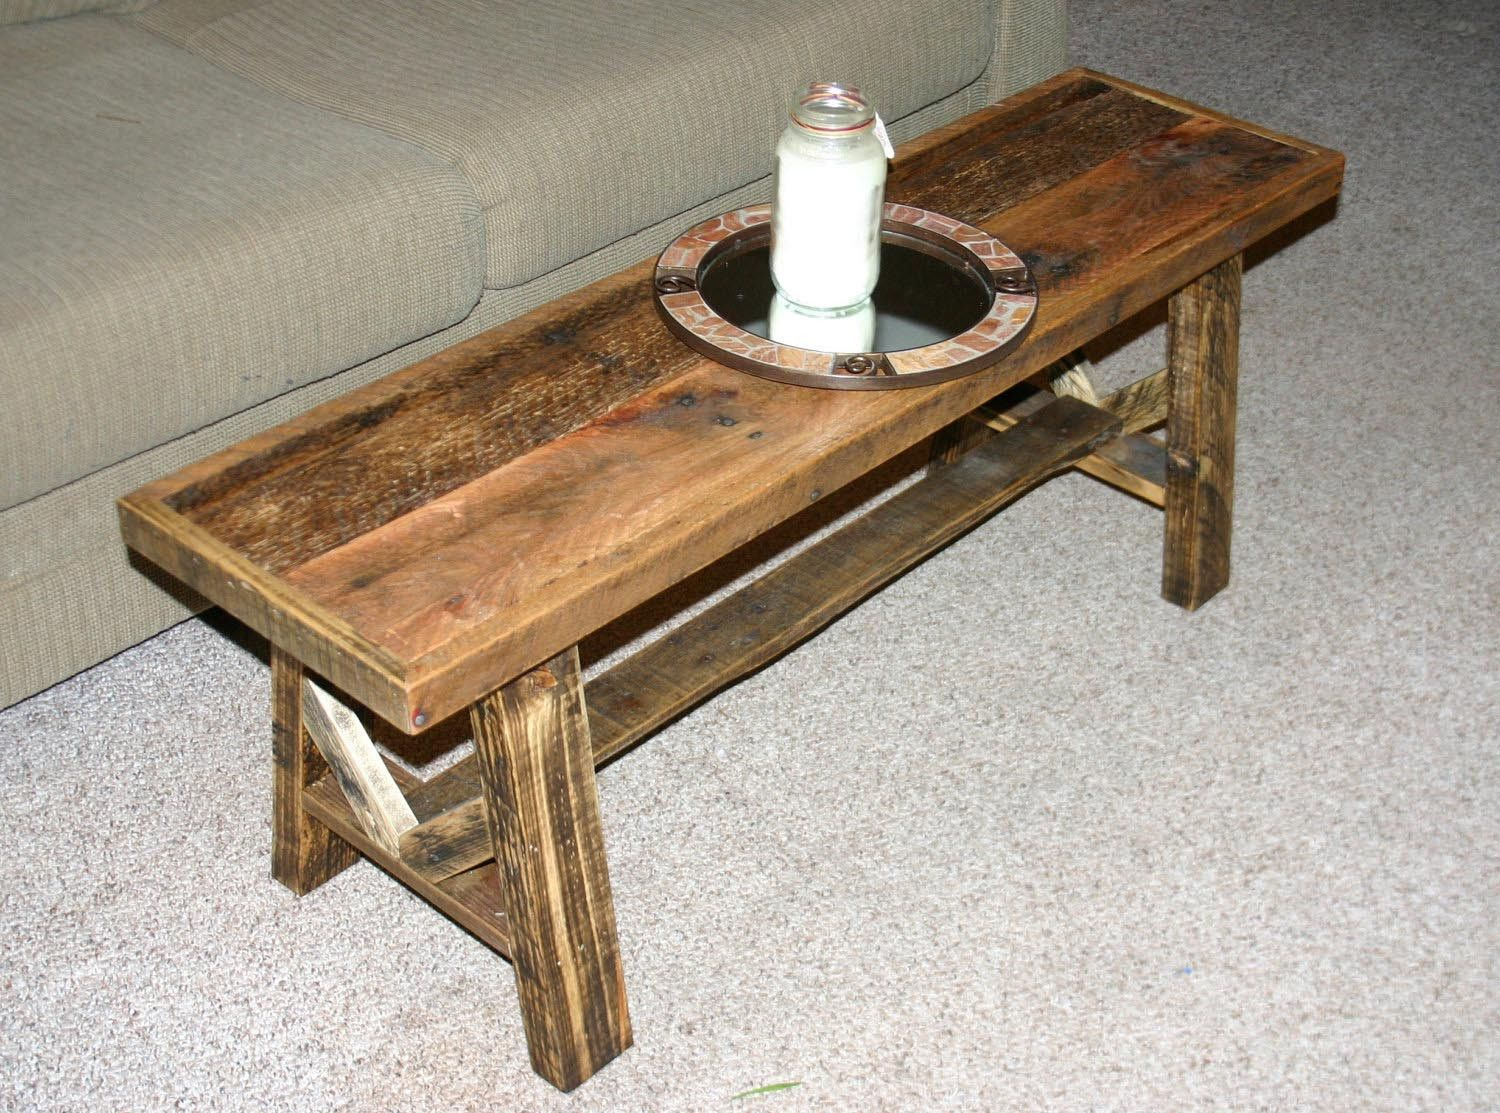 55 Small Narrow Coffee Tables Best Quality Furniture Check More